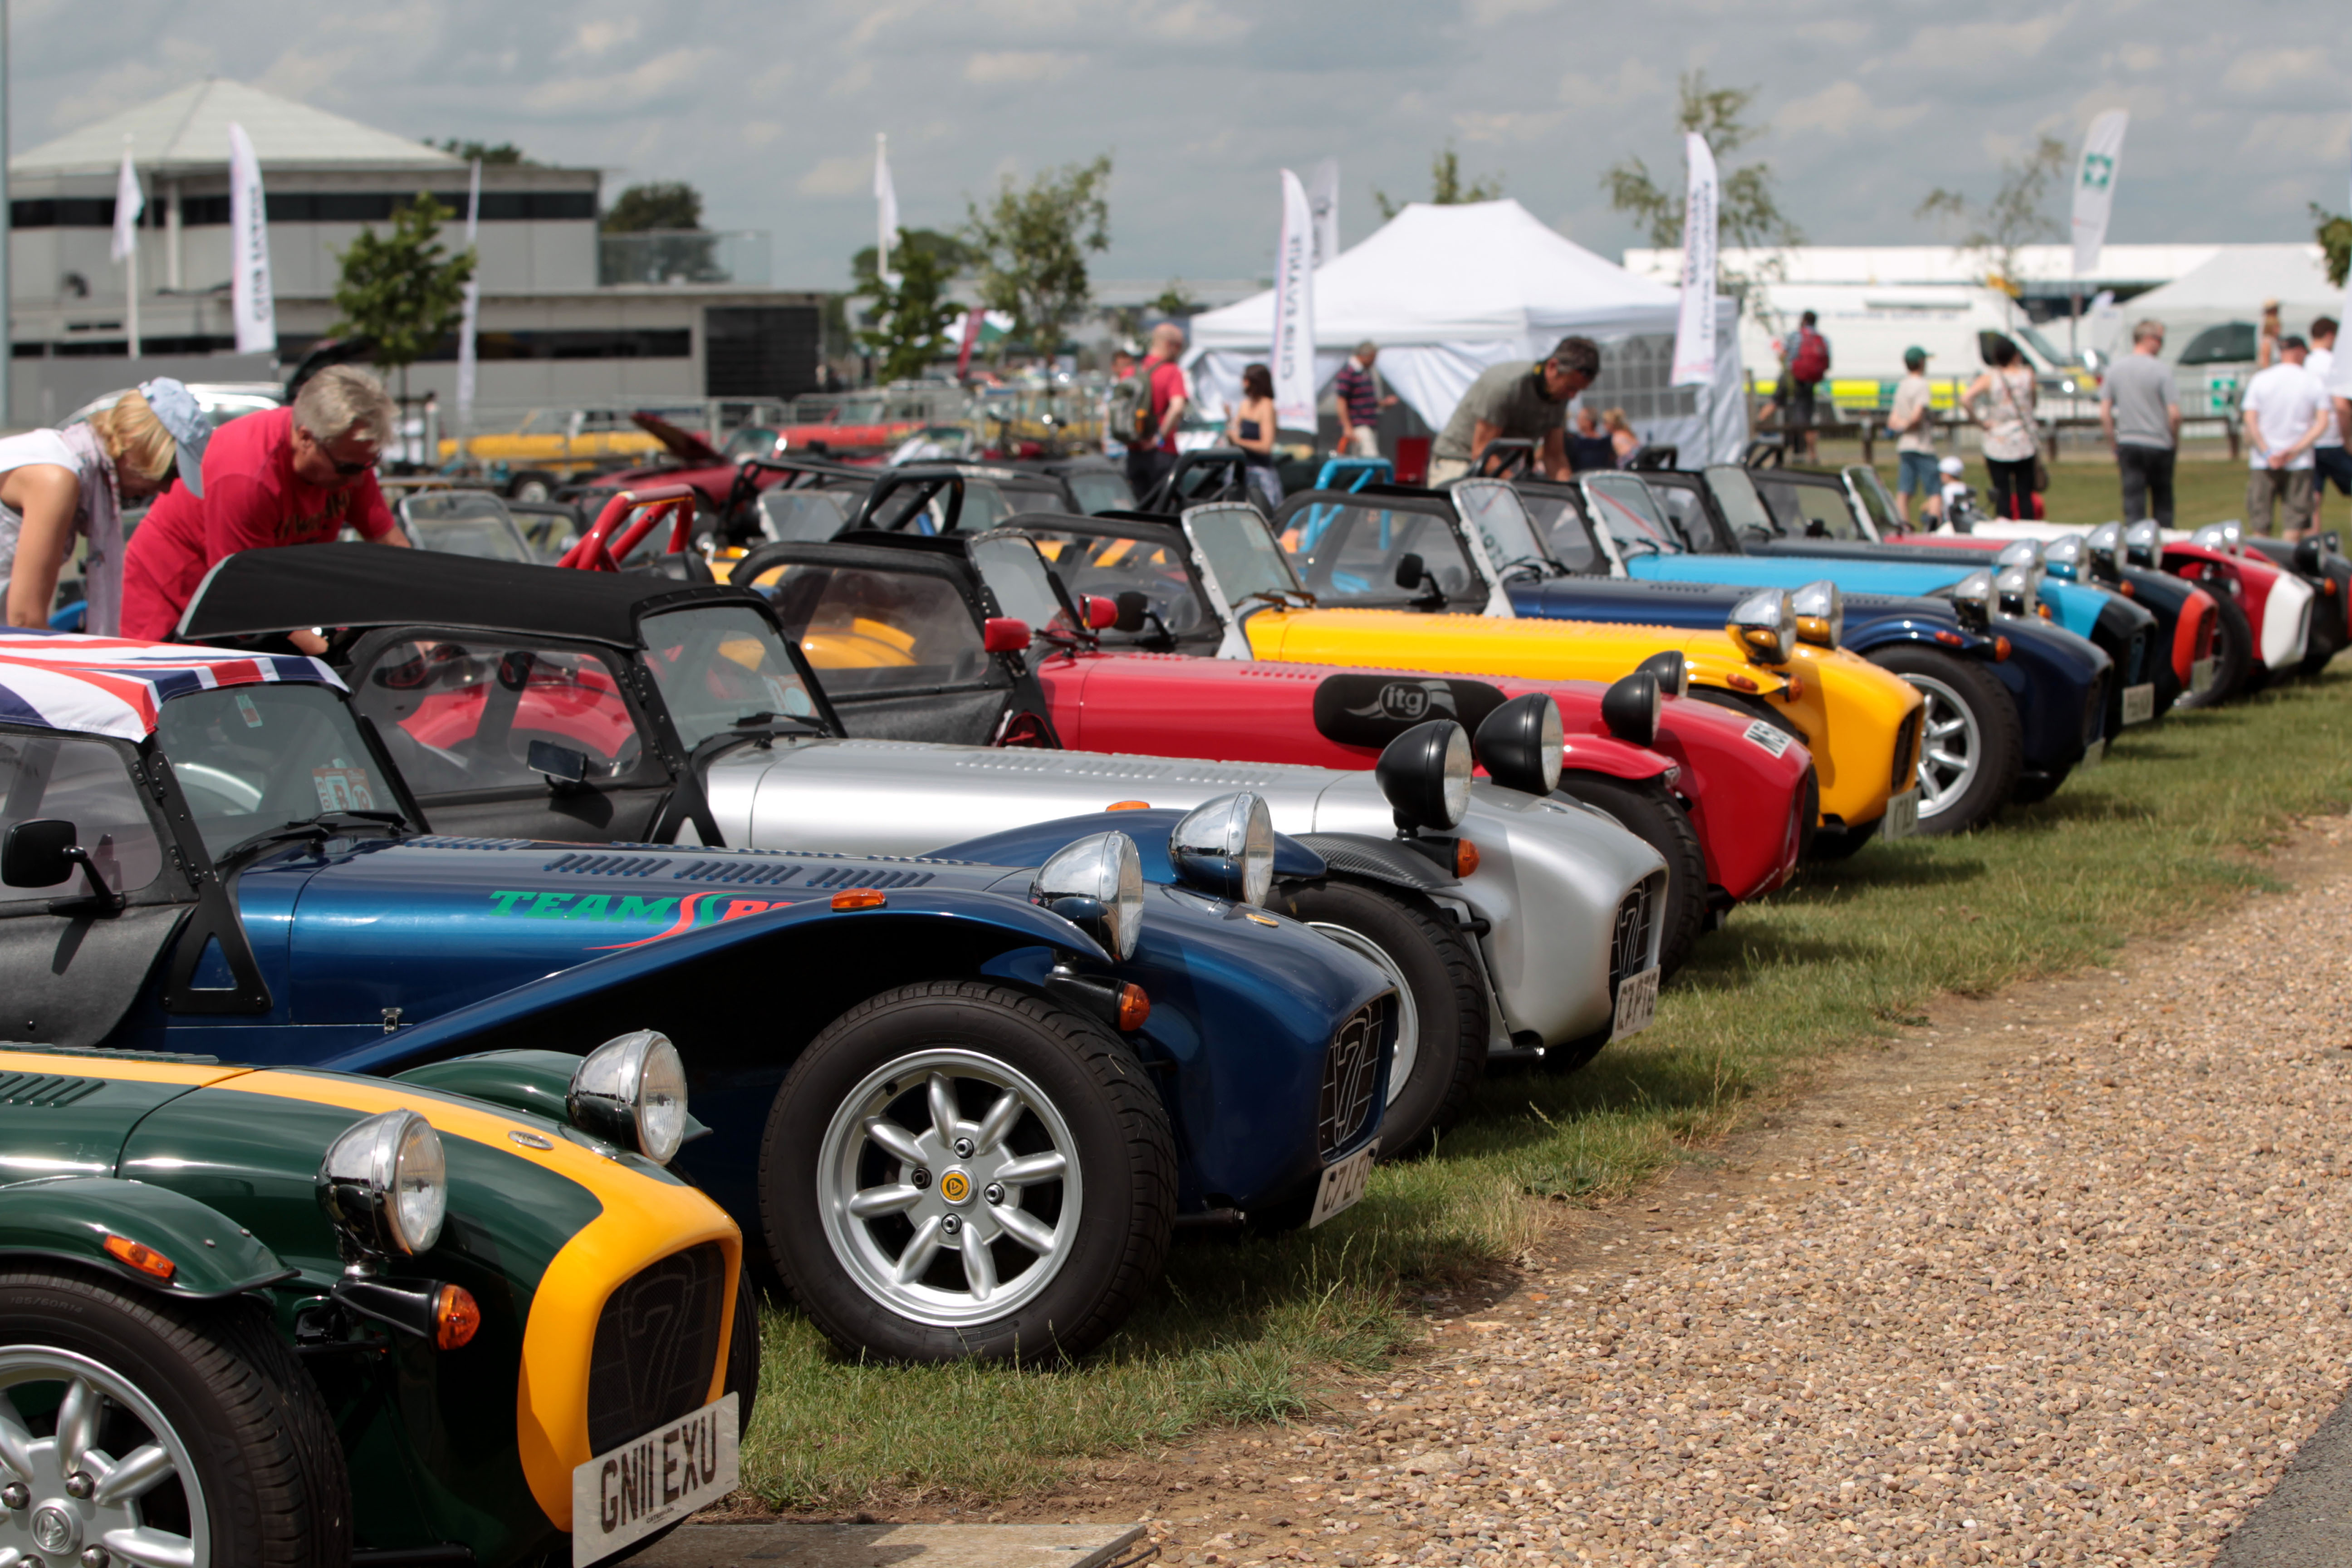 The 2014 Silverstone Classic